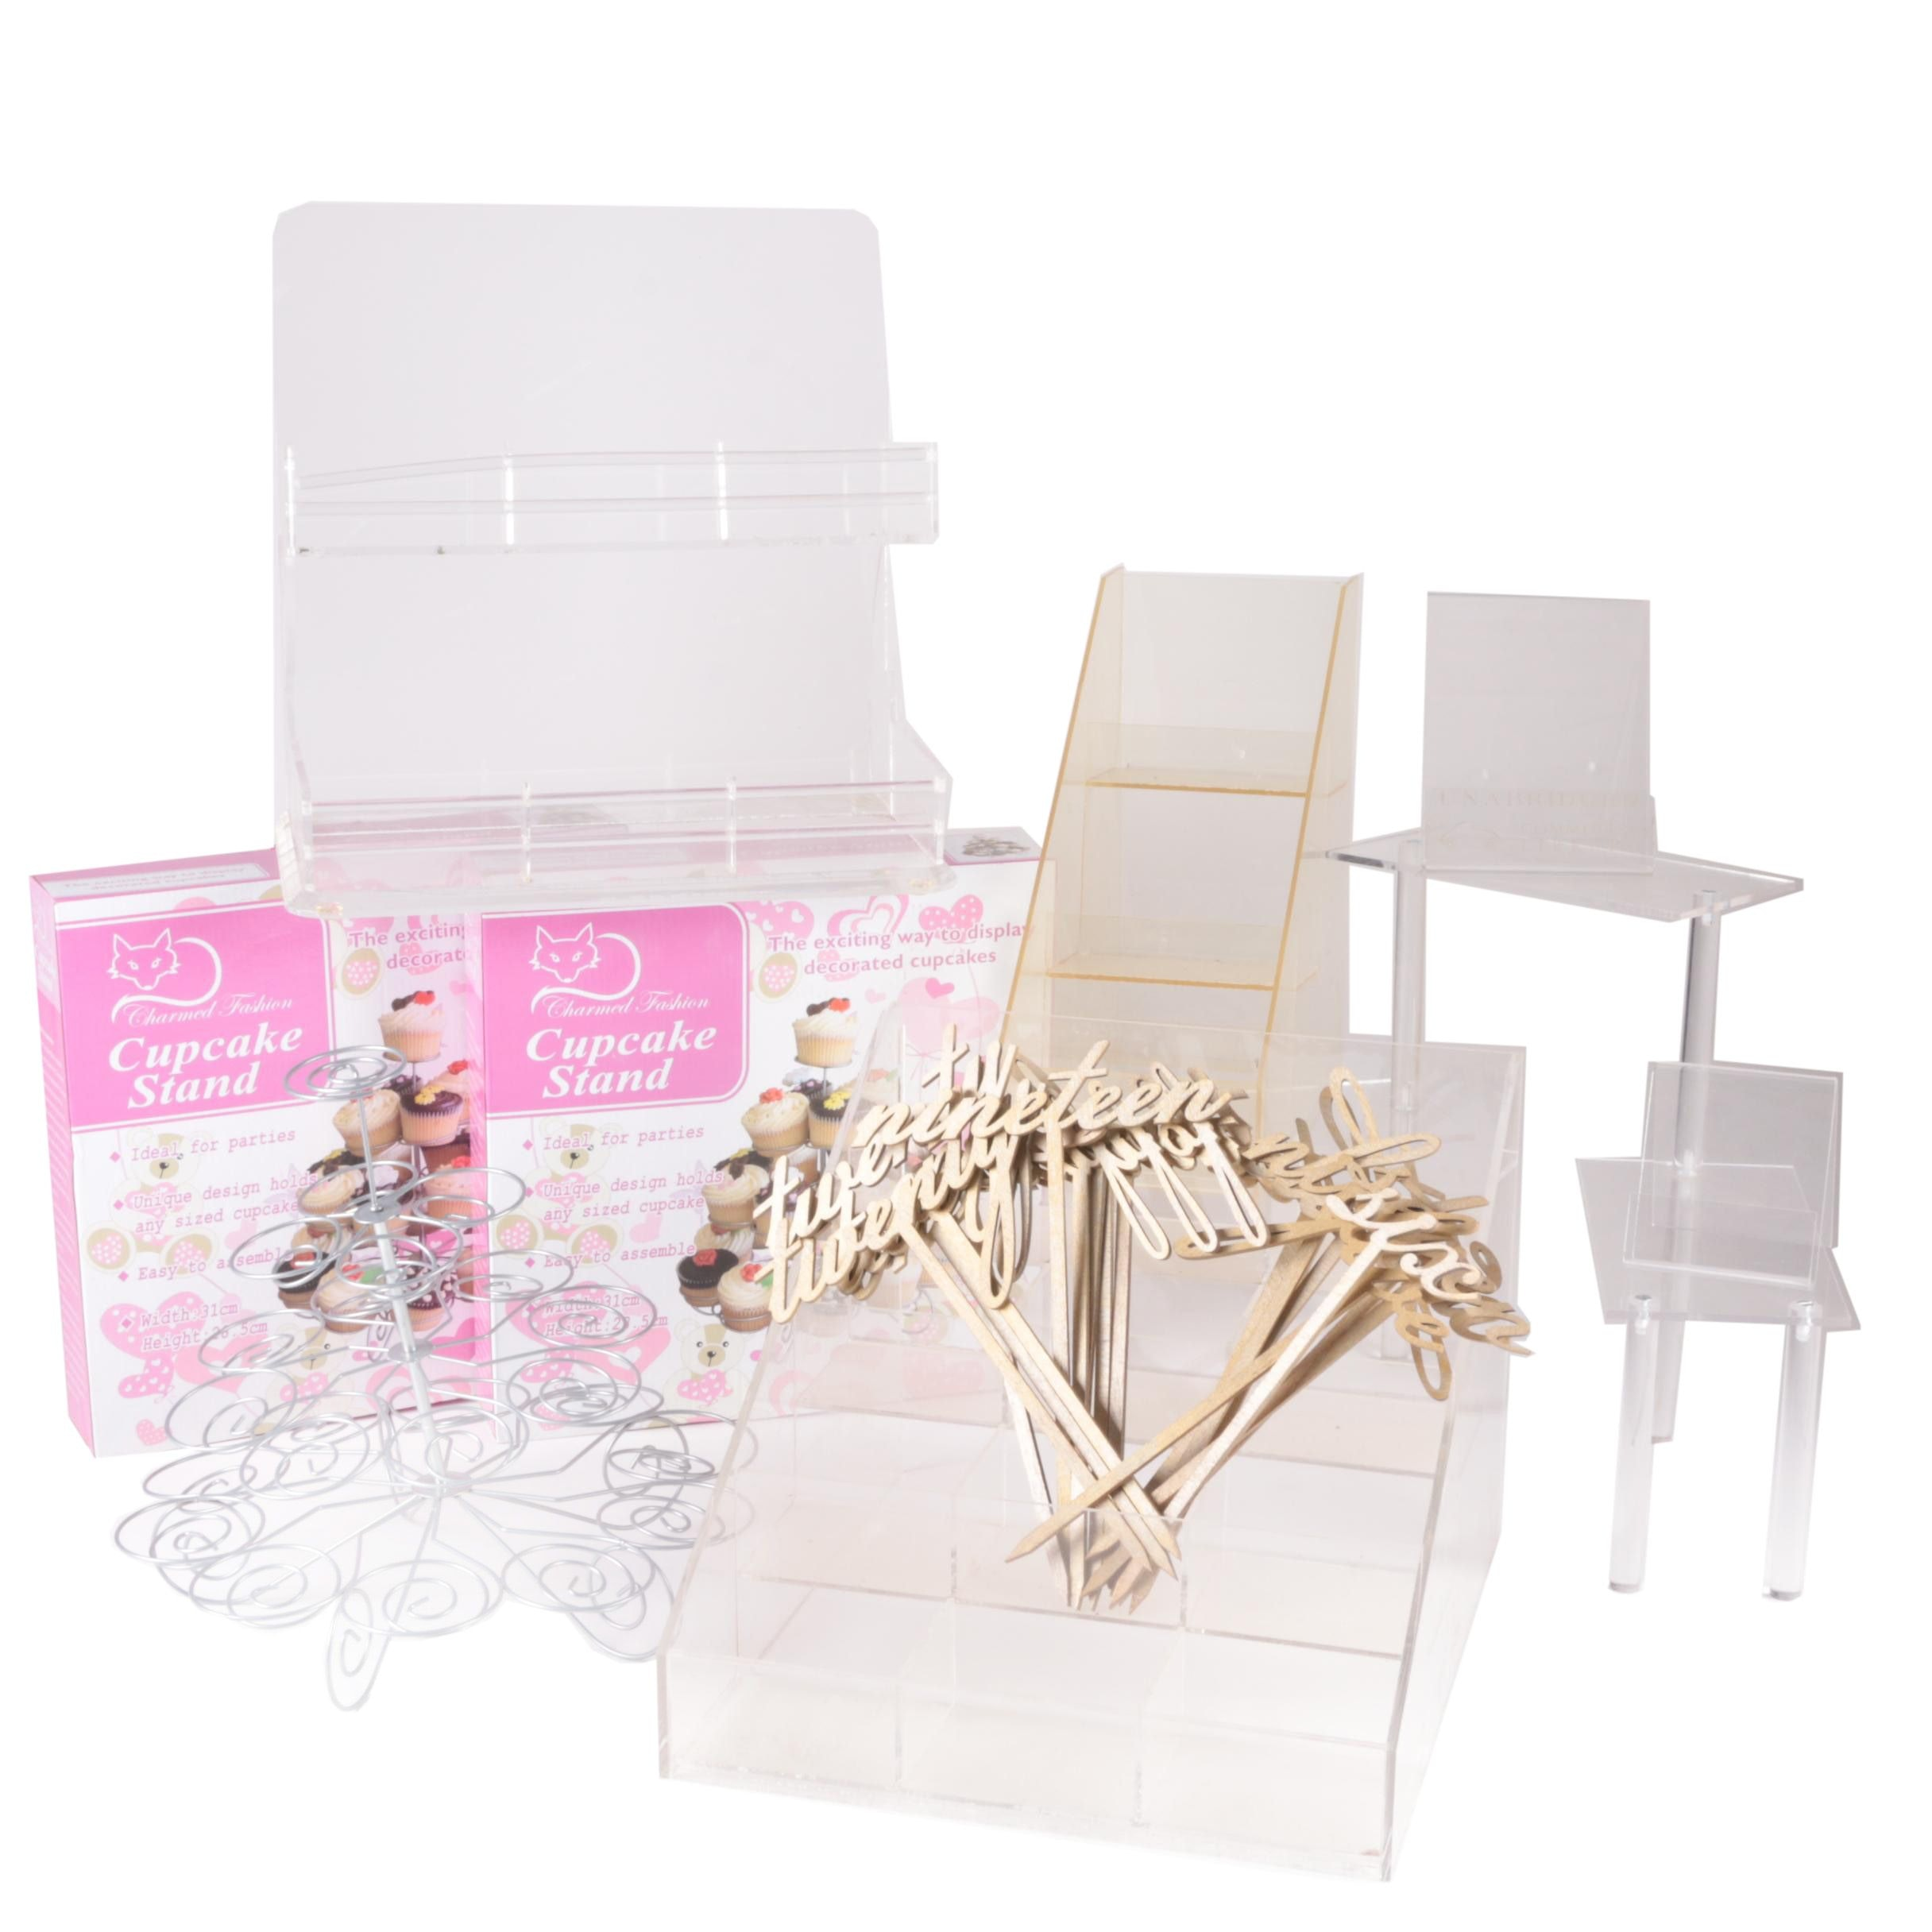 Charmed Fashion Cupcake Stands with Acrylic Retail Displays